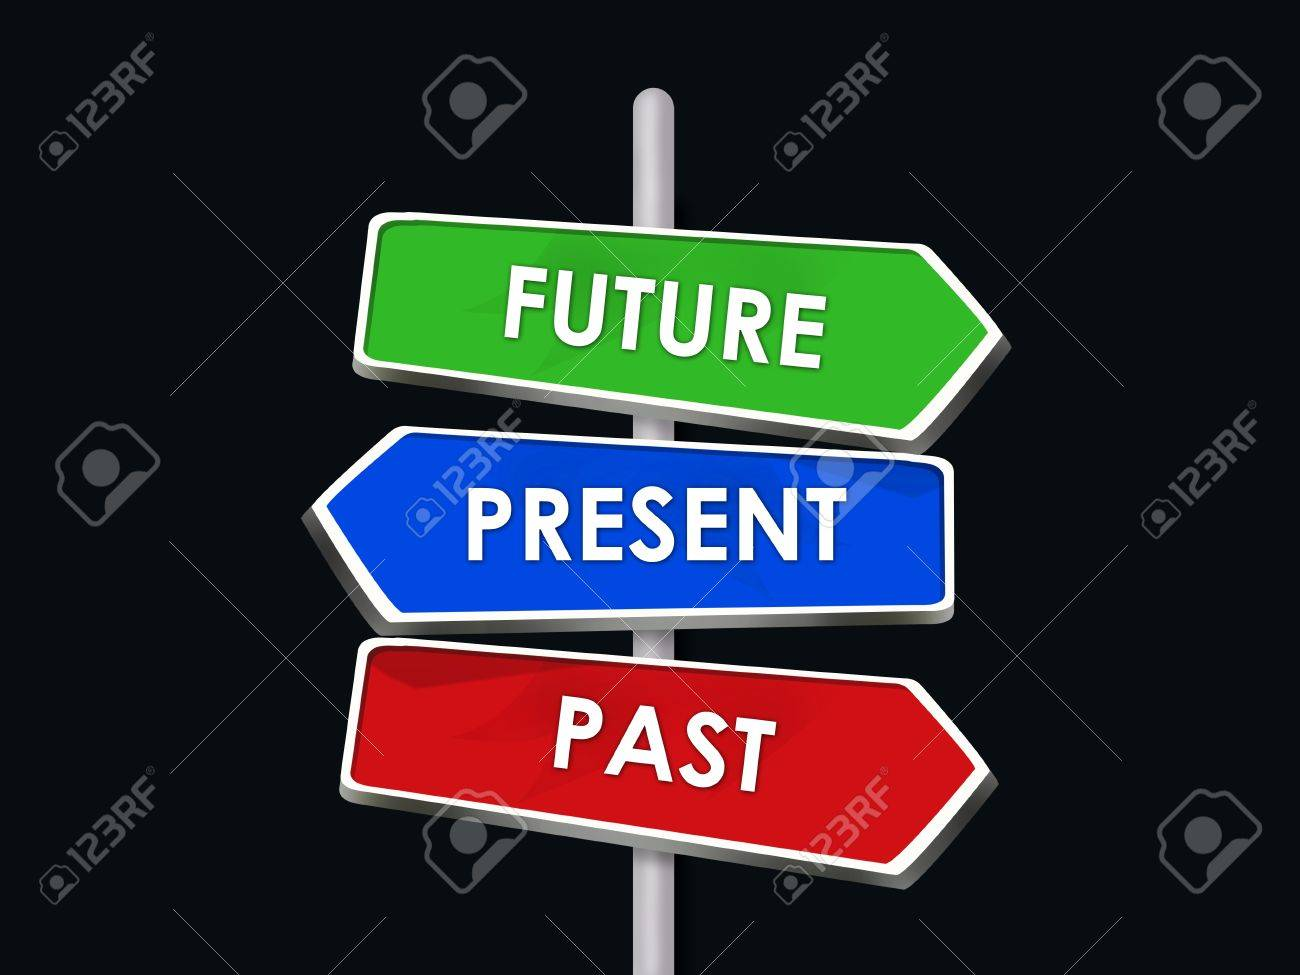 Past Present Future - 3 Colorful Arrow Signs Stock Photo - 16975726